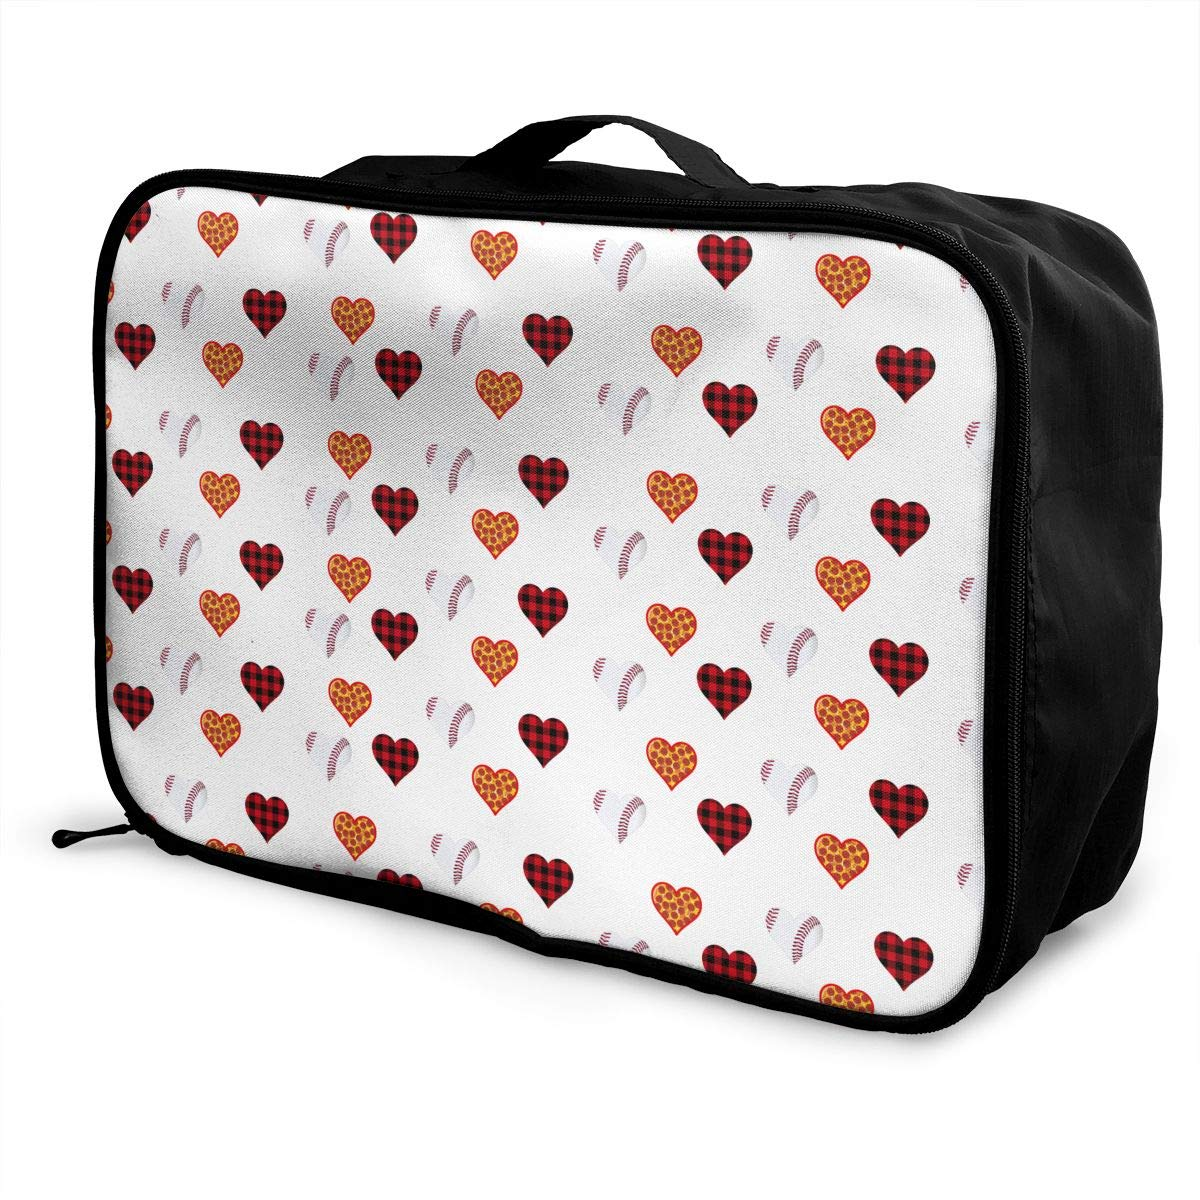 Lightweight Large Capacity Duffel Portable Luggage Bag Plaid Pizza Baseball Heart Travel Waterproof Foldable Storage Carry Tote Bag